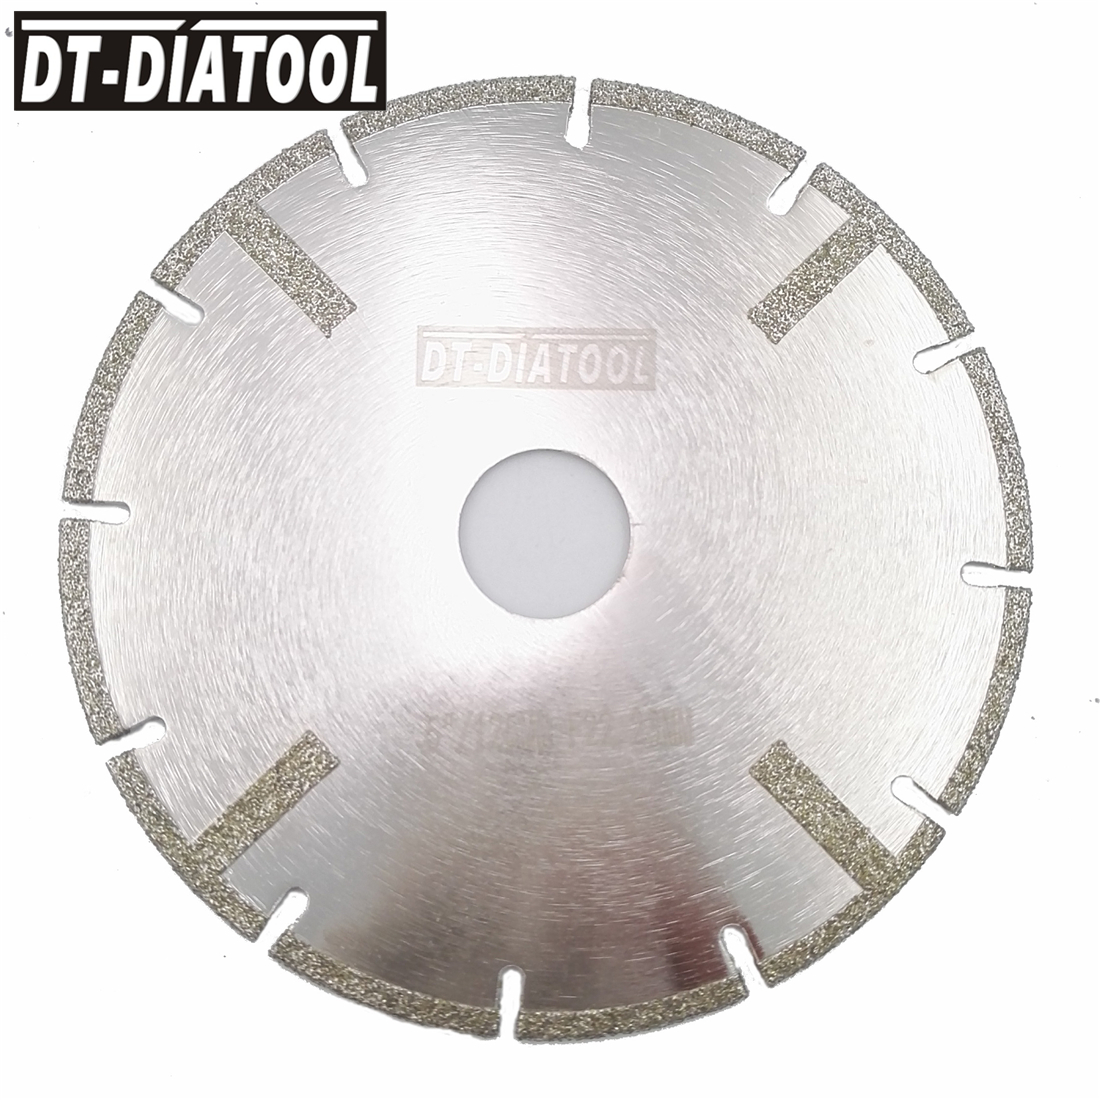 DT-DIATOOL 1pc 5inch Electroplated Diamond Saw Blade Bore 22.23MM With Protection 125MM Reinforced Cutting Discs For Marble Tile